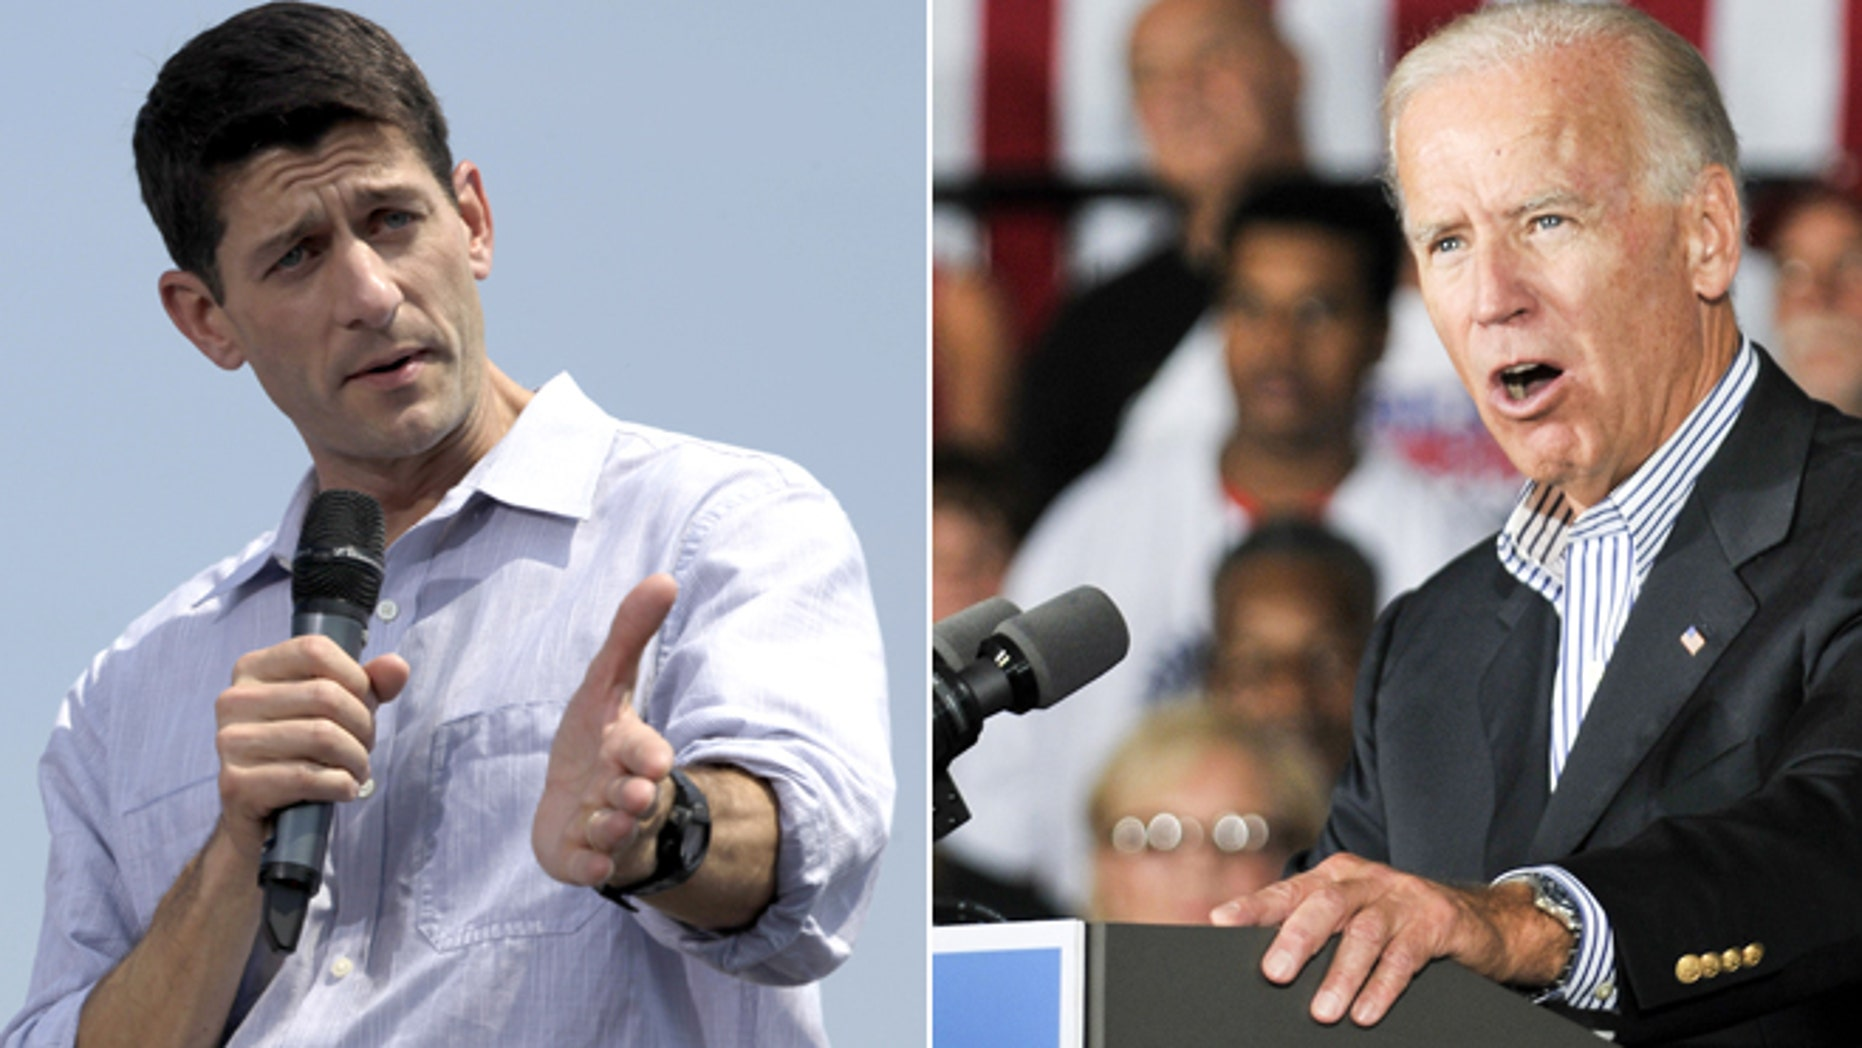 Aug. 31, 2012: Paul Ryan and Joe Biden campaign on the heels of the GOP convention.